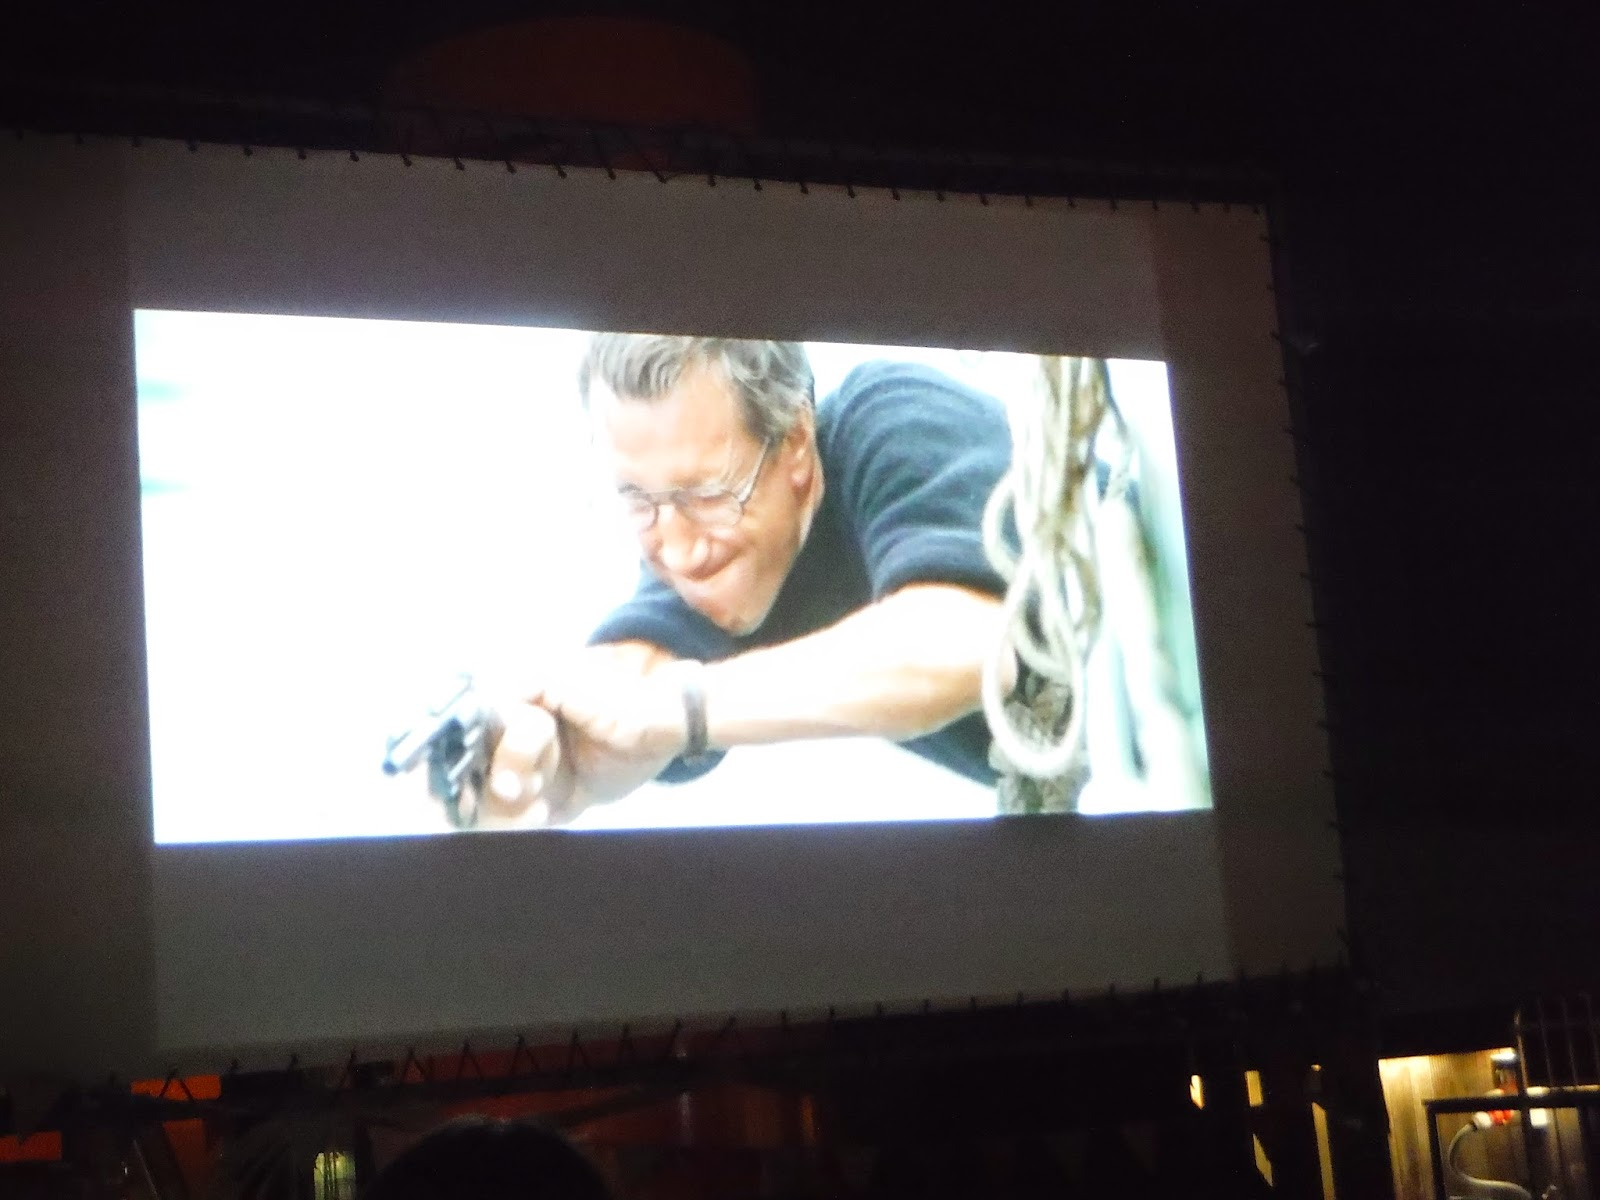 another shot of the cinema screen as the film was showing